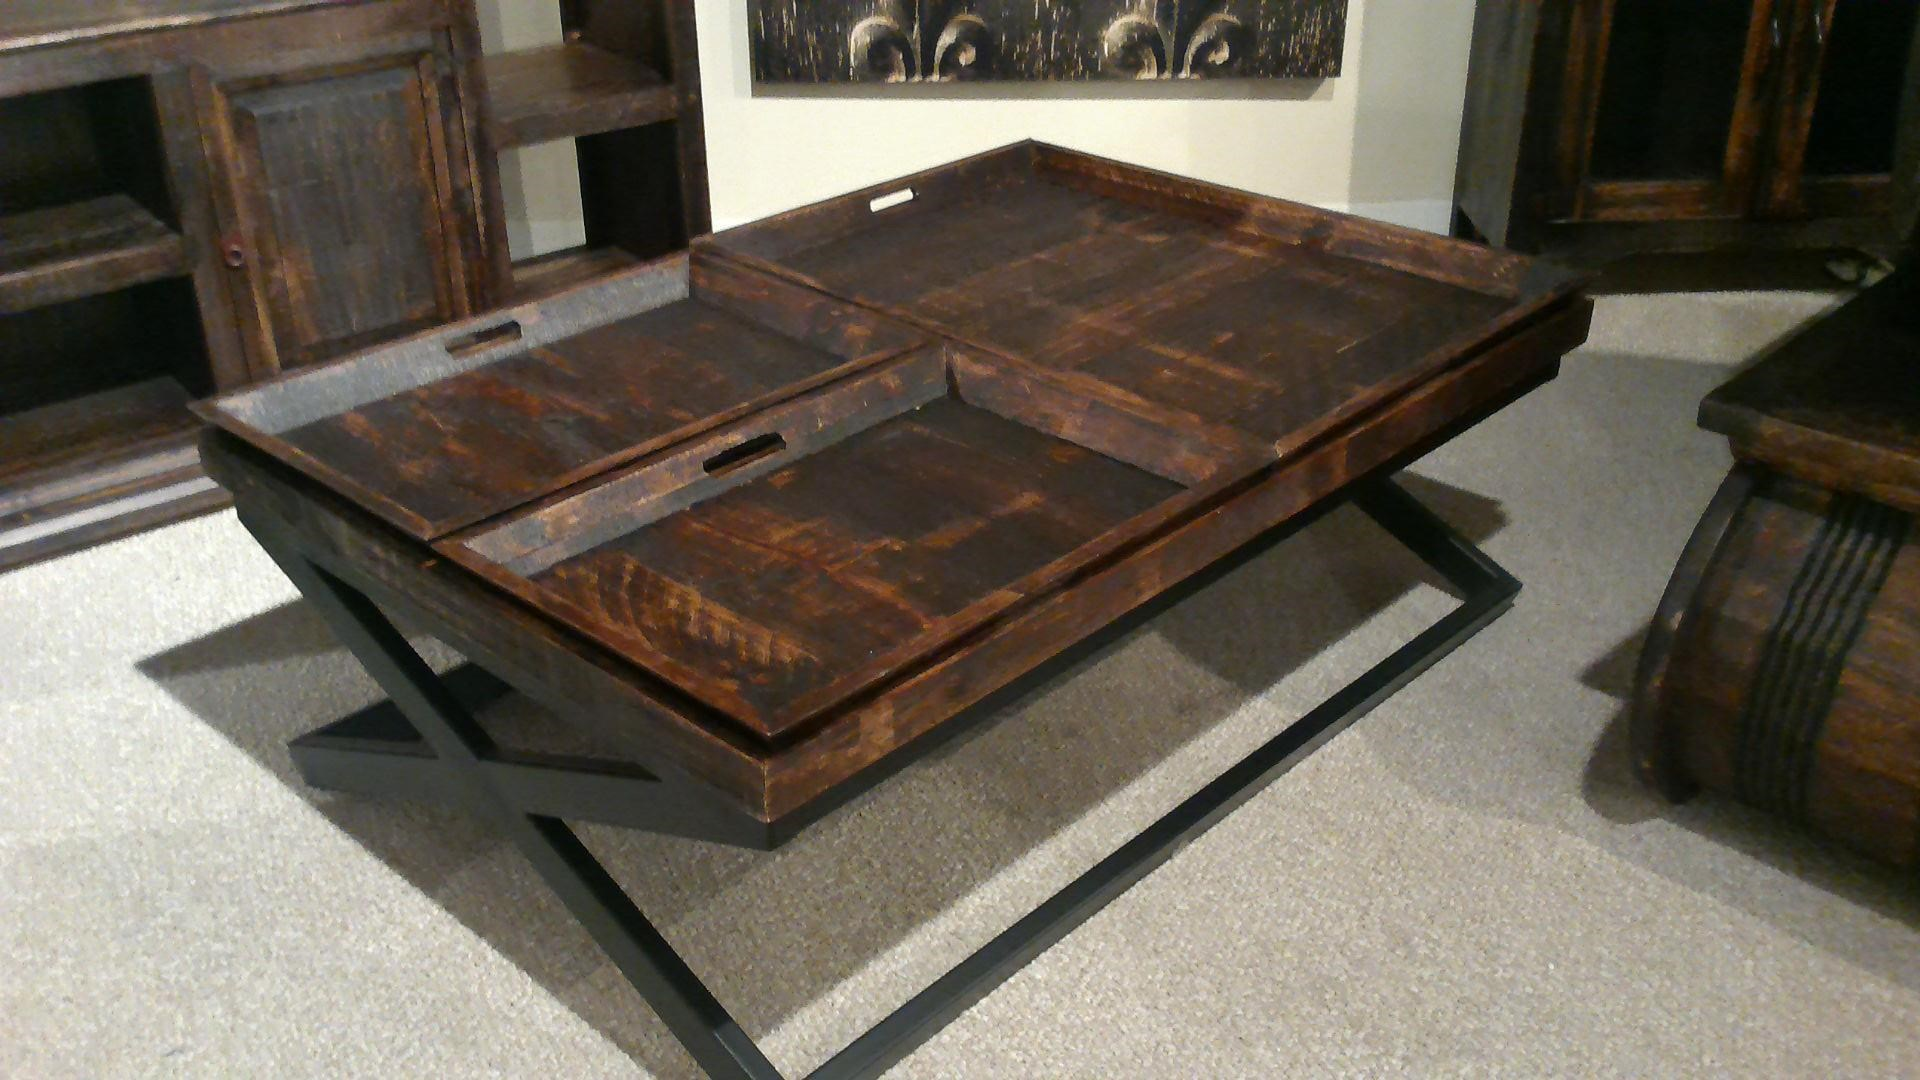 Vintage Occasional Tables VINTA F JON120CEI RODEO Coffee Table